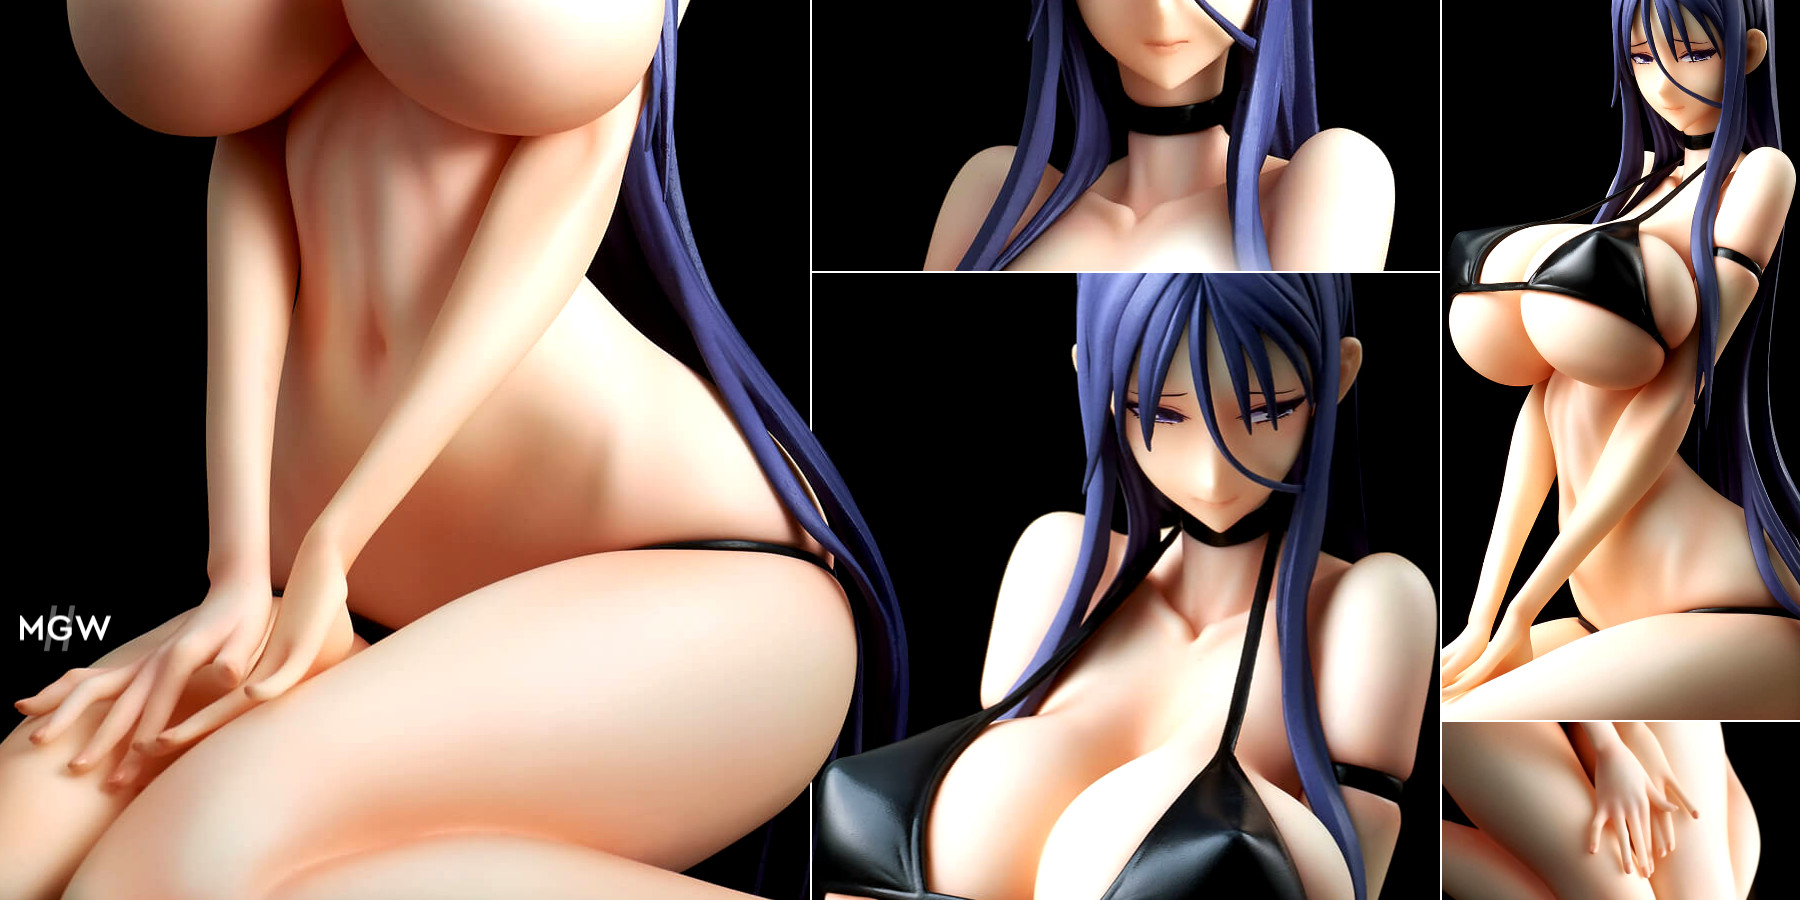 Misa nee Black bikini ver. by Q six from Mahou Shoujo by RAITA MGW Anime Figure Pre order Guide